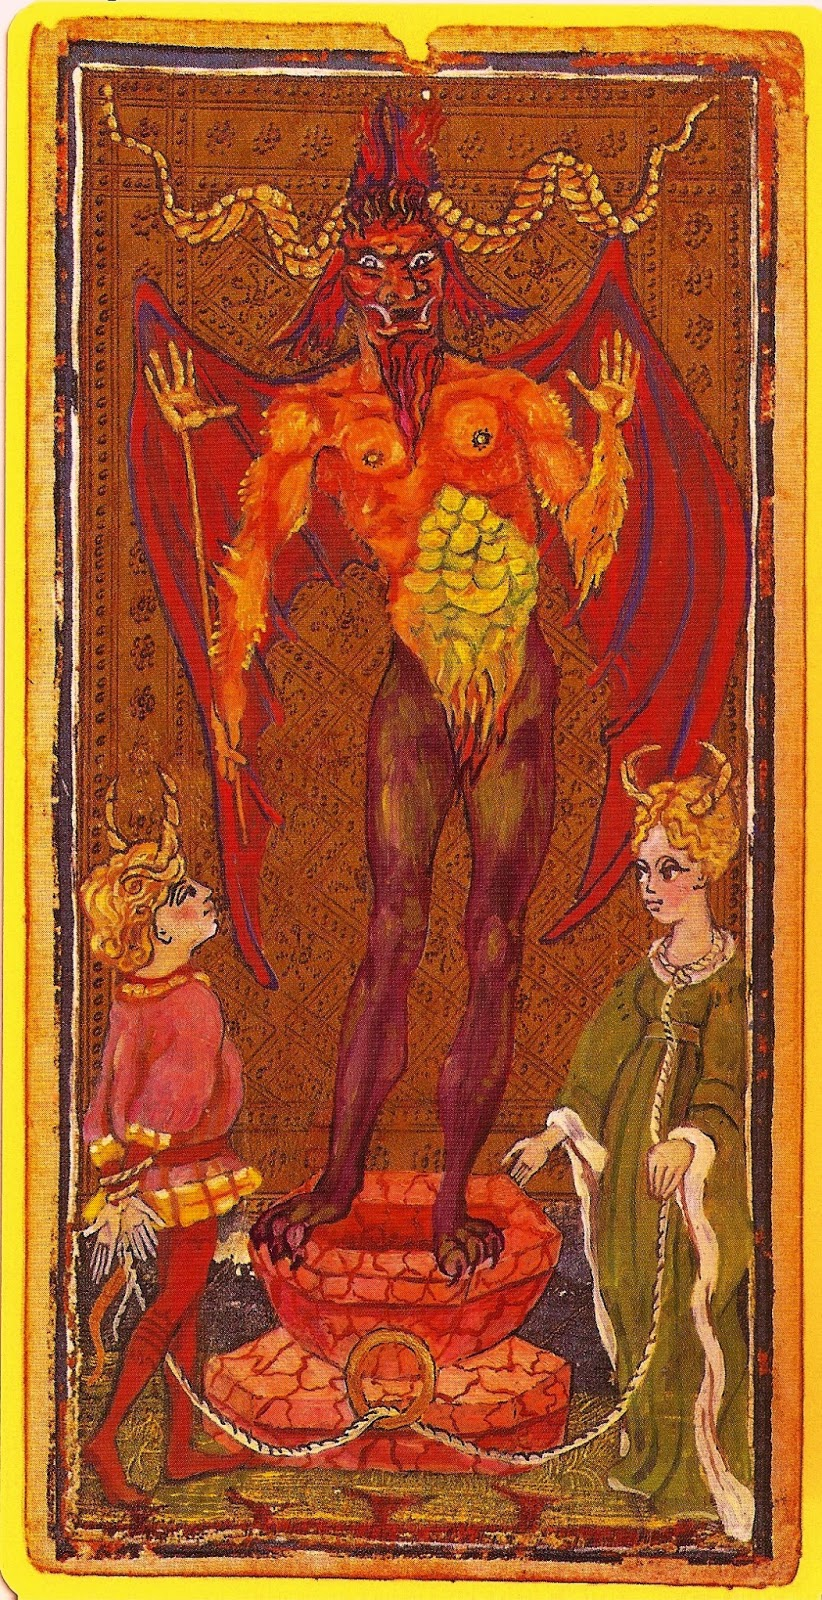 Tarot And More: 7) ARCHETYPES IN THE TAROT